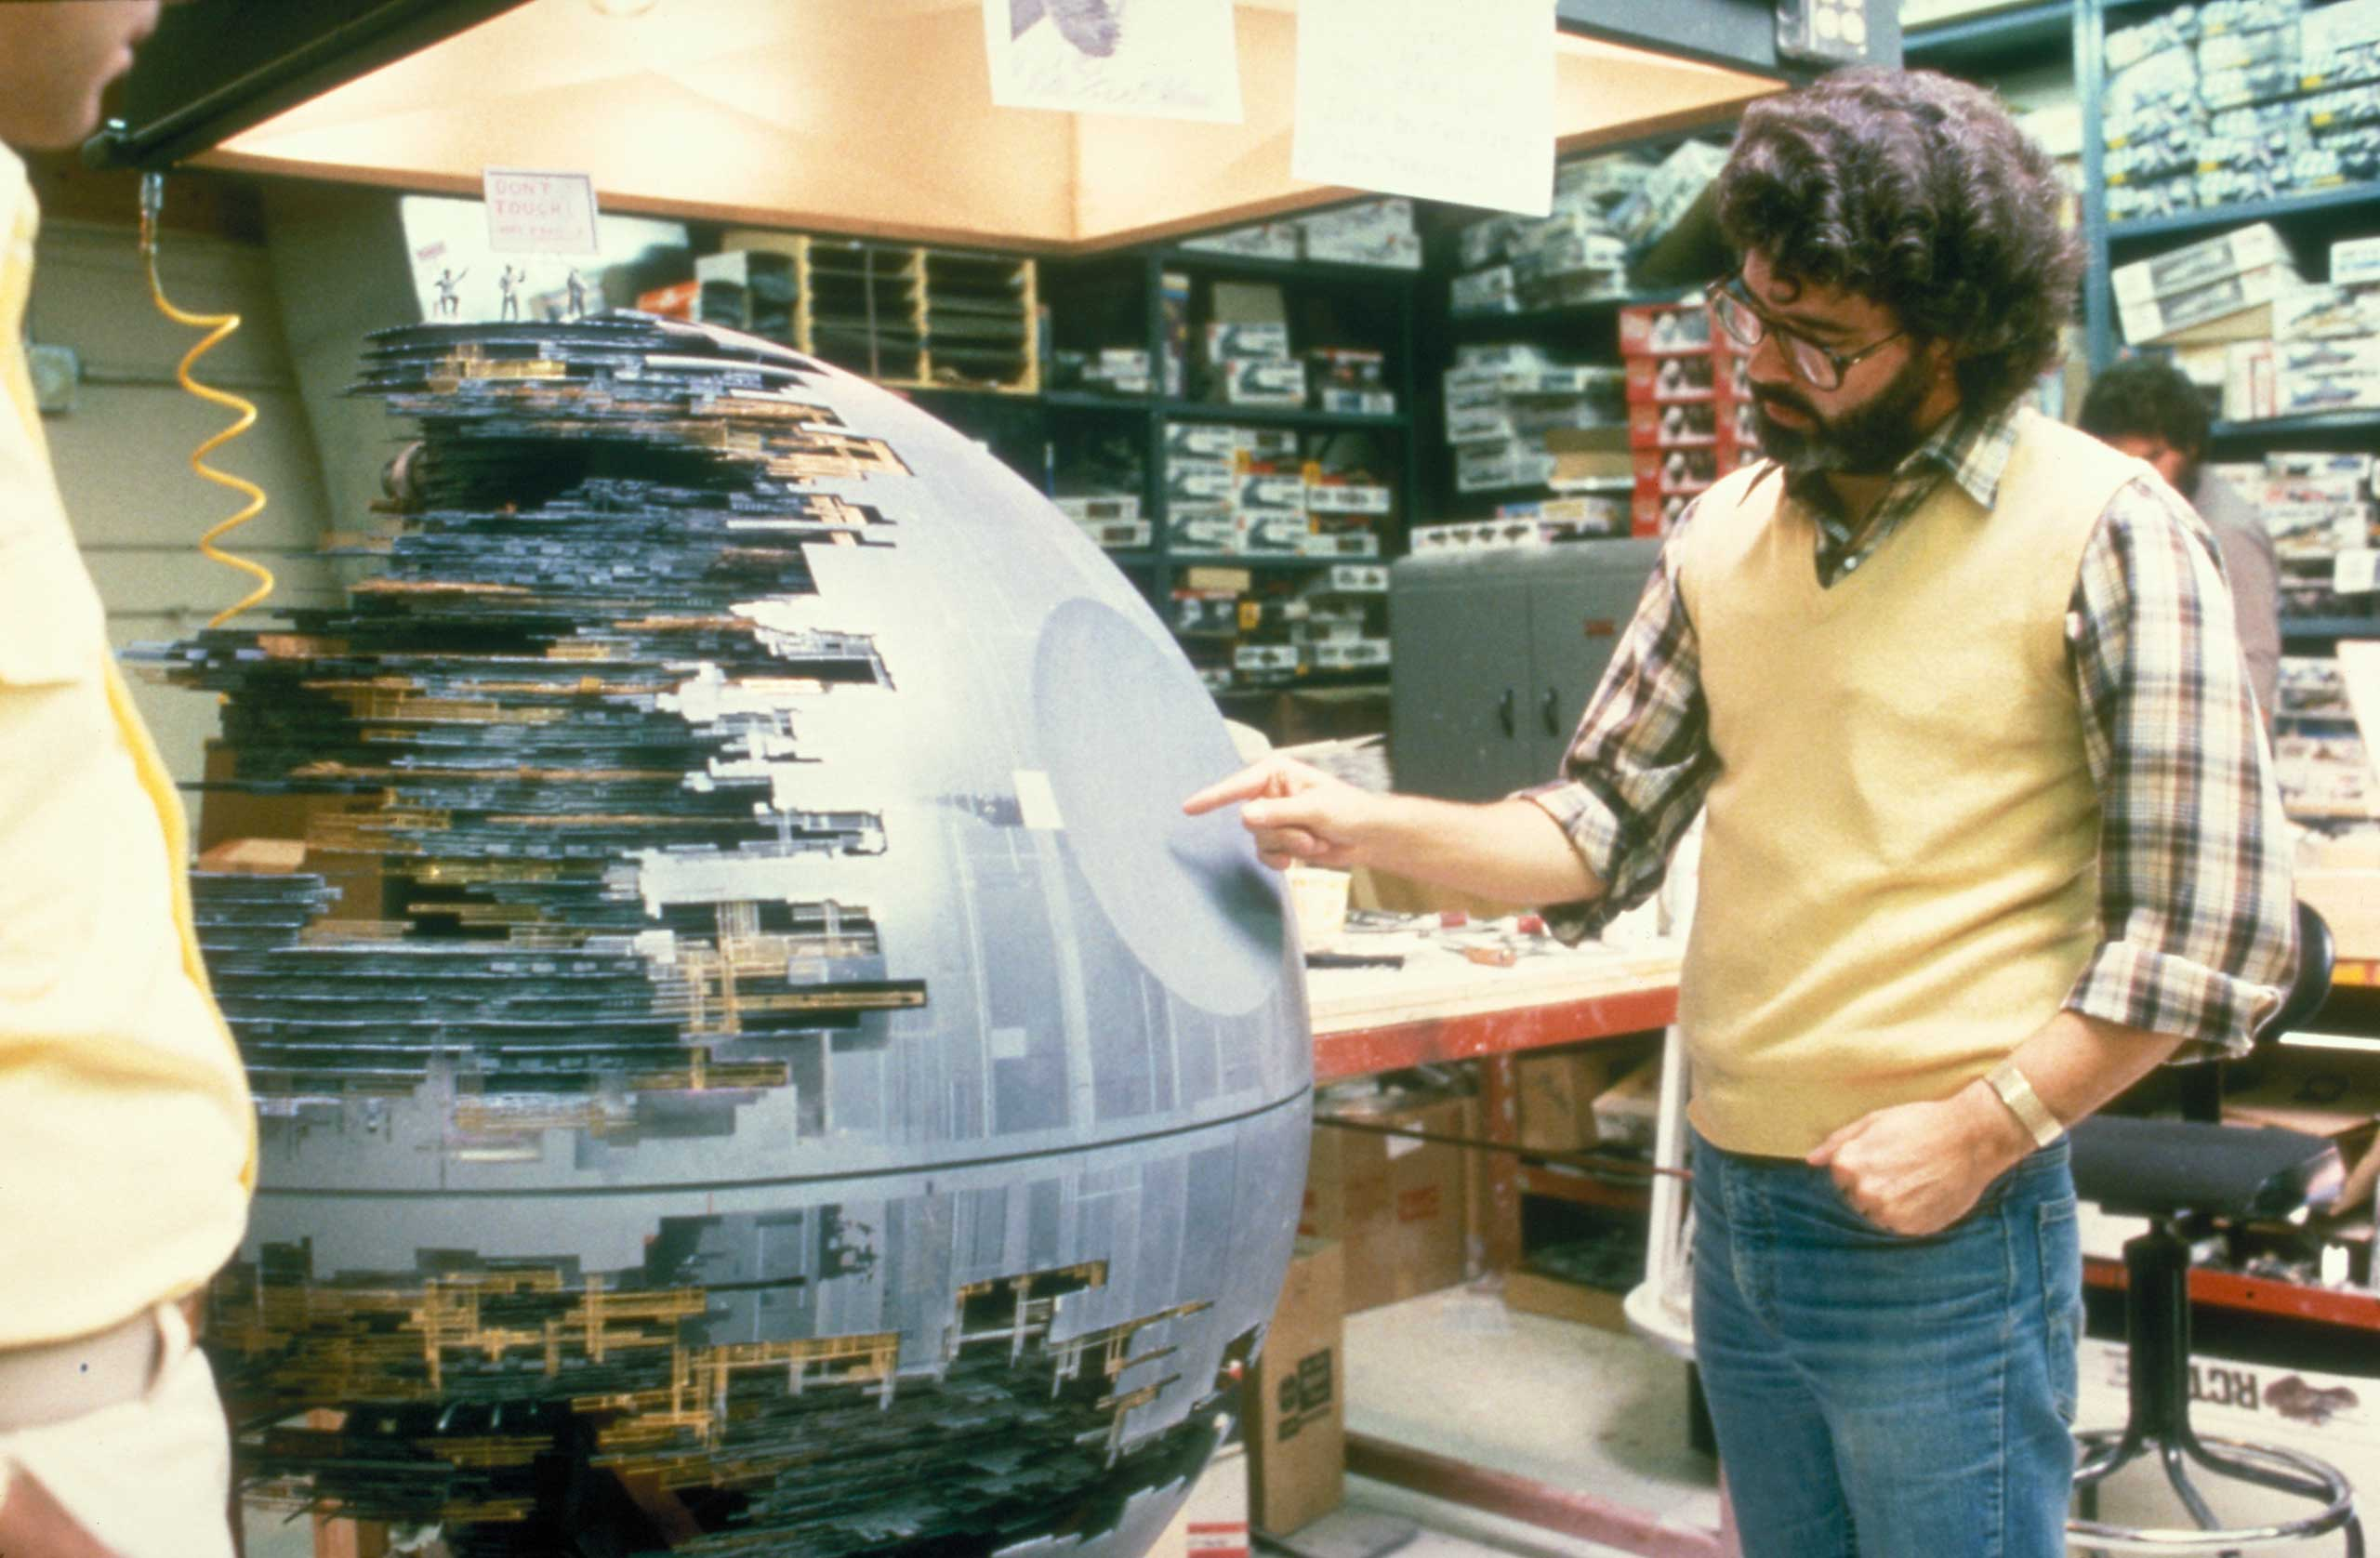 Lucas makes sure that the Death Star is fully armed and operational for <i>Return of the Jedi</i>.